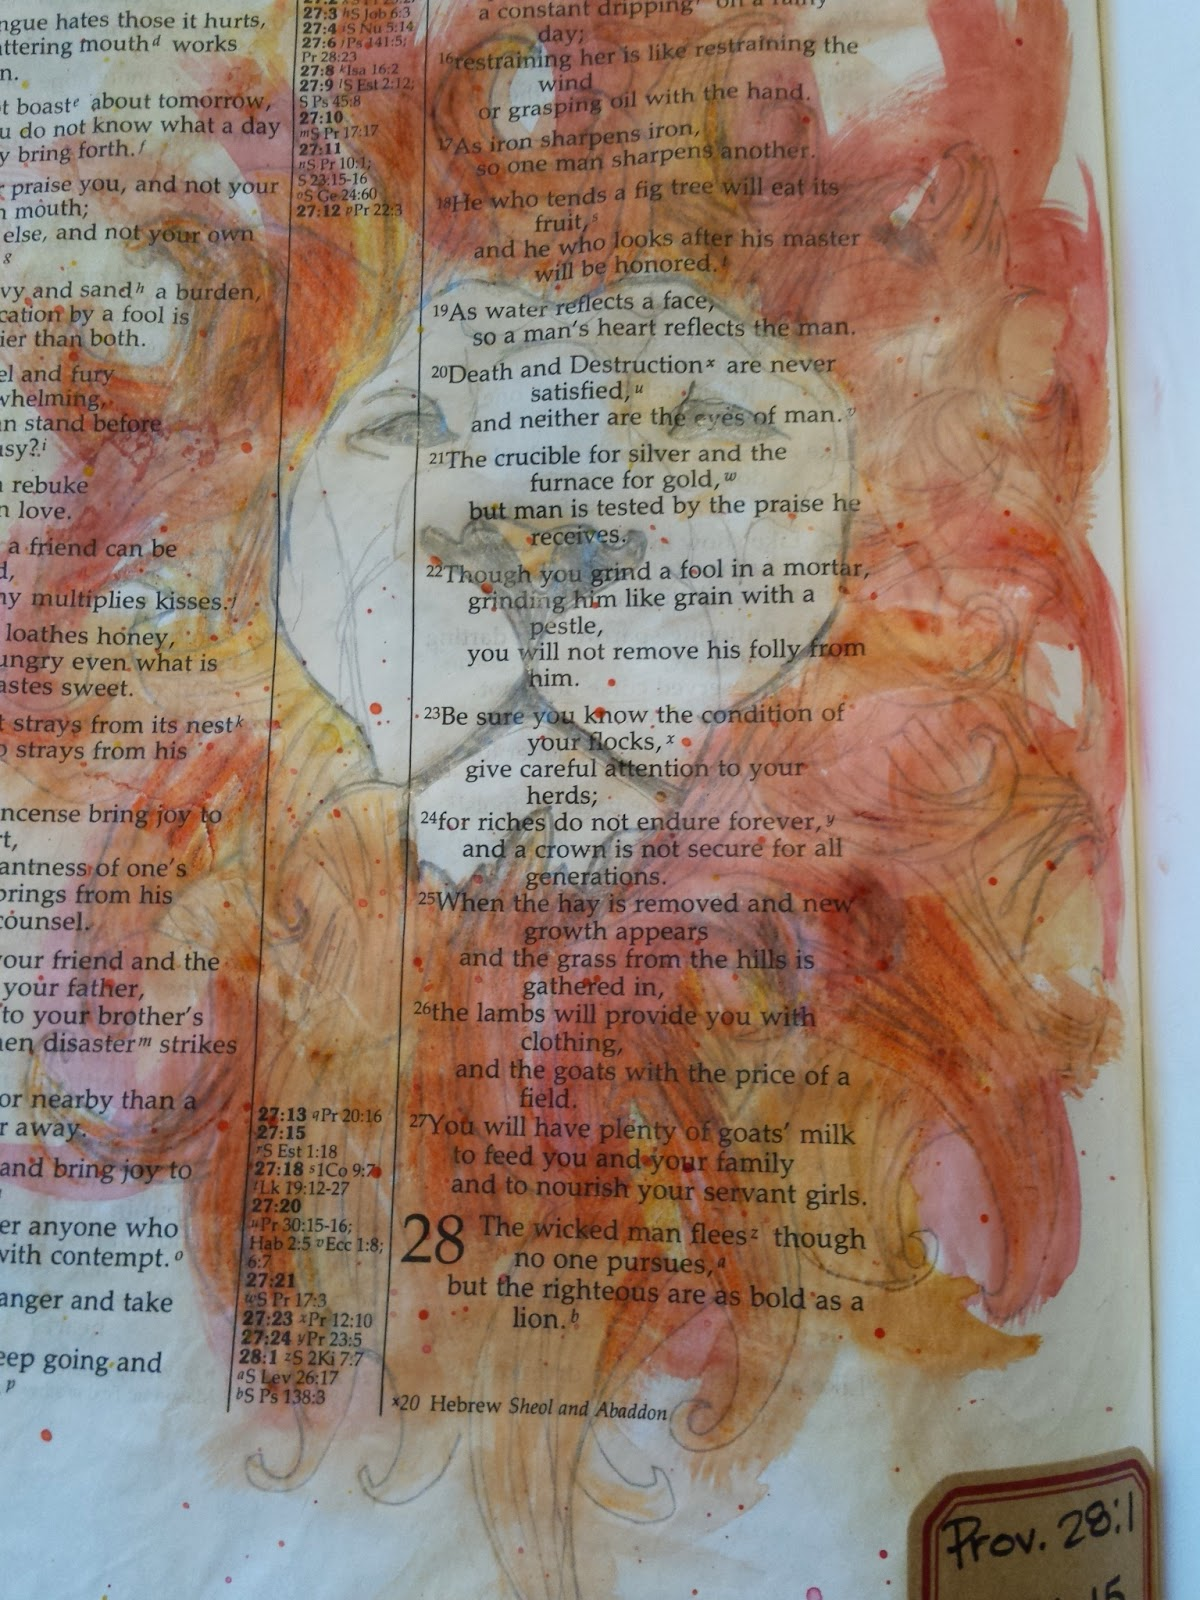 Journaling Bible art for Proverbs 28:1 with a watercolor lion.